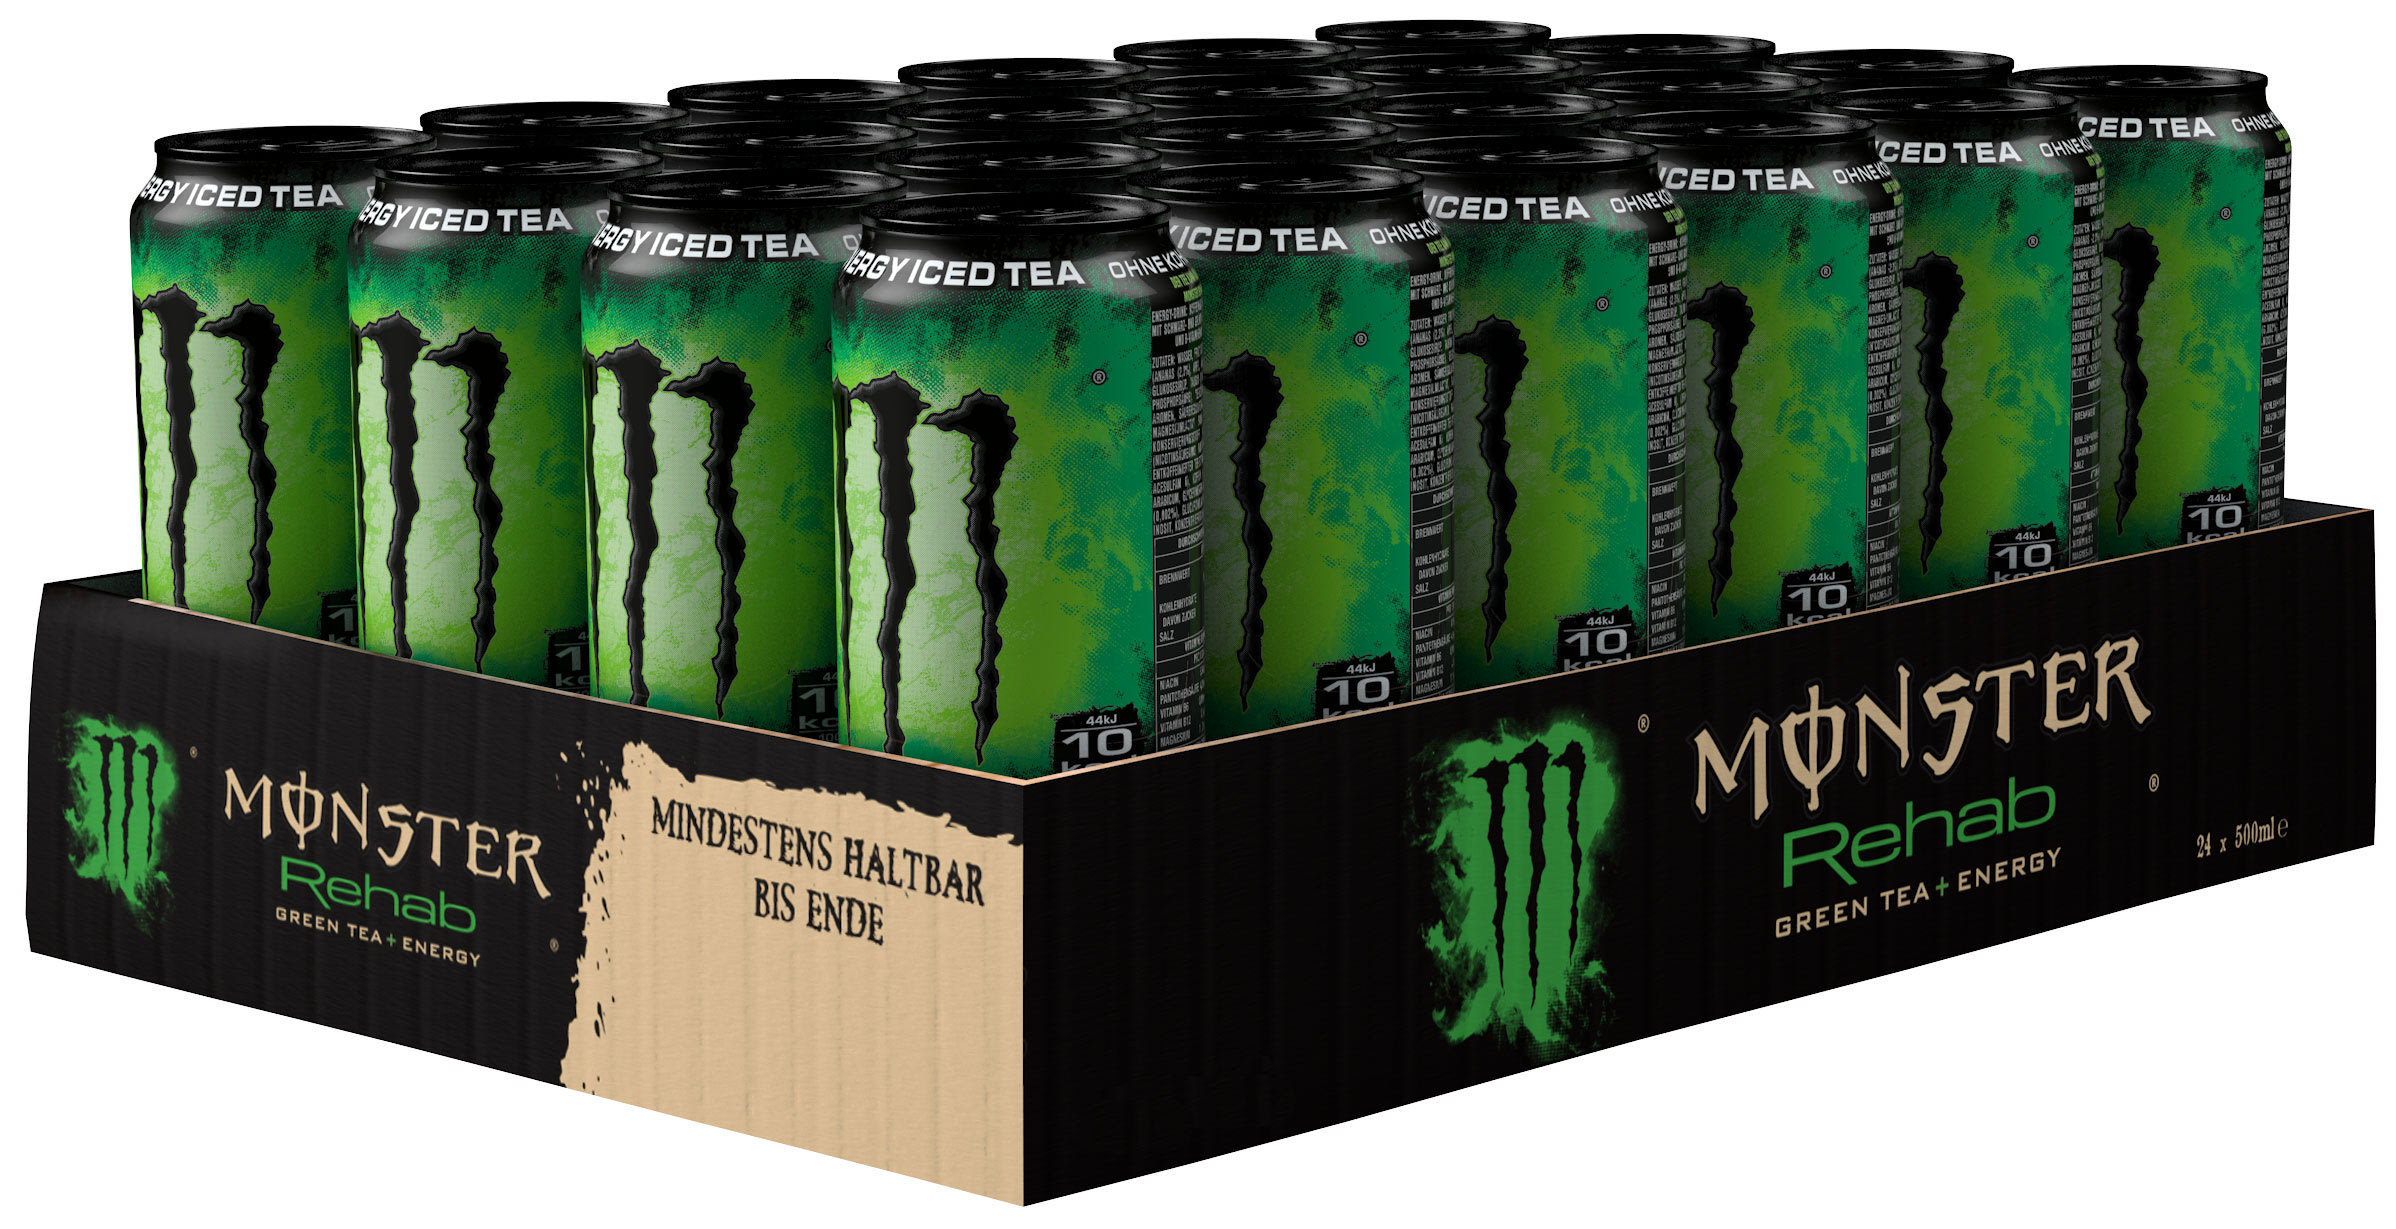 Monster Rehab Green Tea + Energy Karton 24 x 0,5 l Dose Einweg